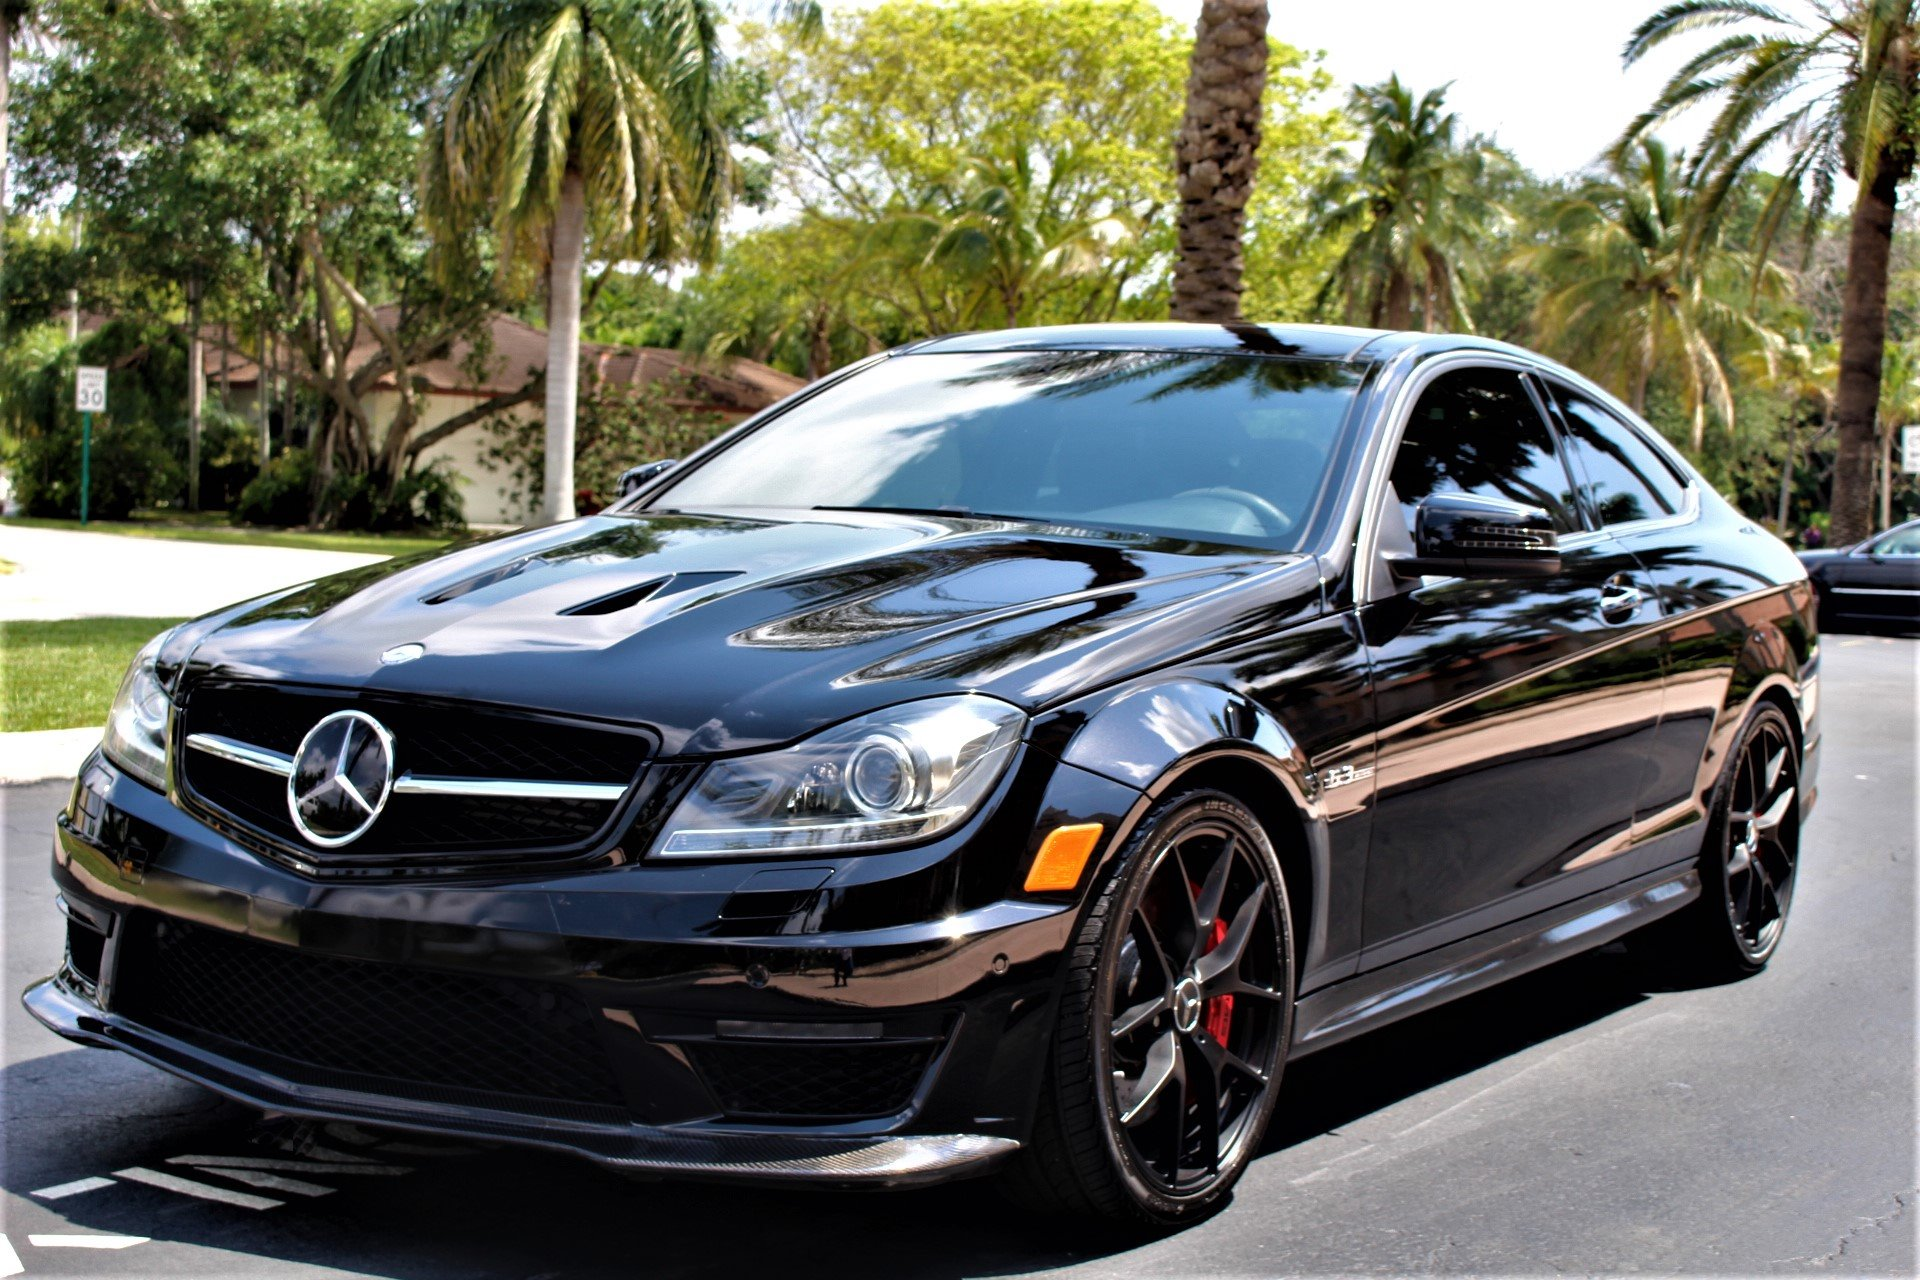 Used 2015 Mercedes-Benz C-Class 507 Edition C 63 AMG 507 Edition for sale Sold at The Gables Sports Cars in Miami FL 33146 4